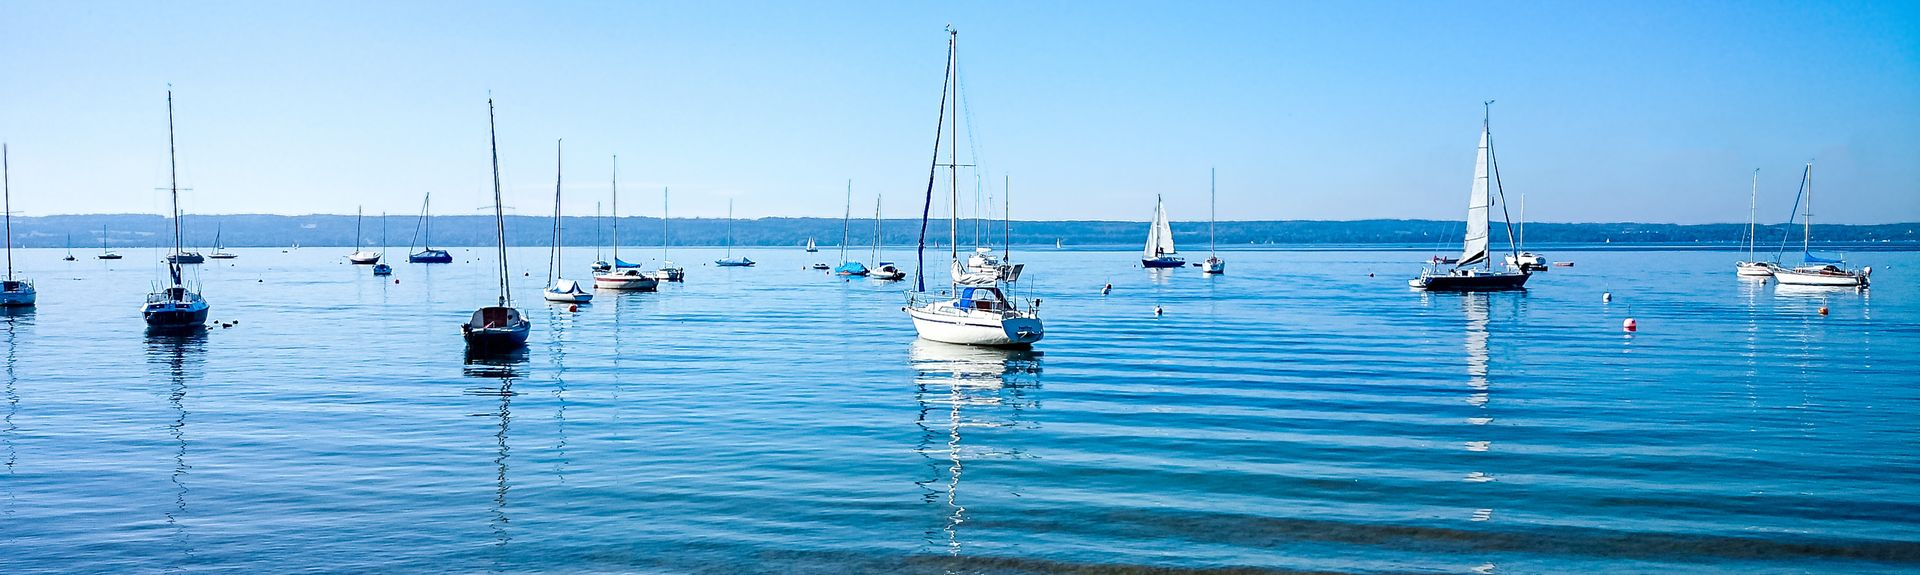 Lago di Ammersee, Ammersee, Baviera, Germania